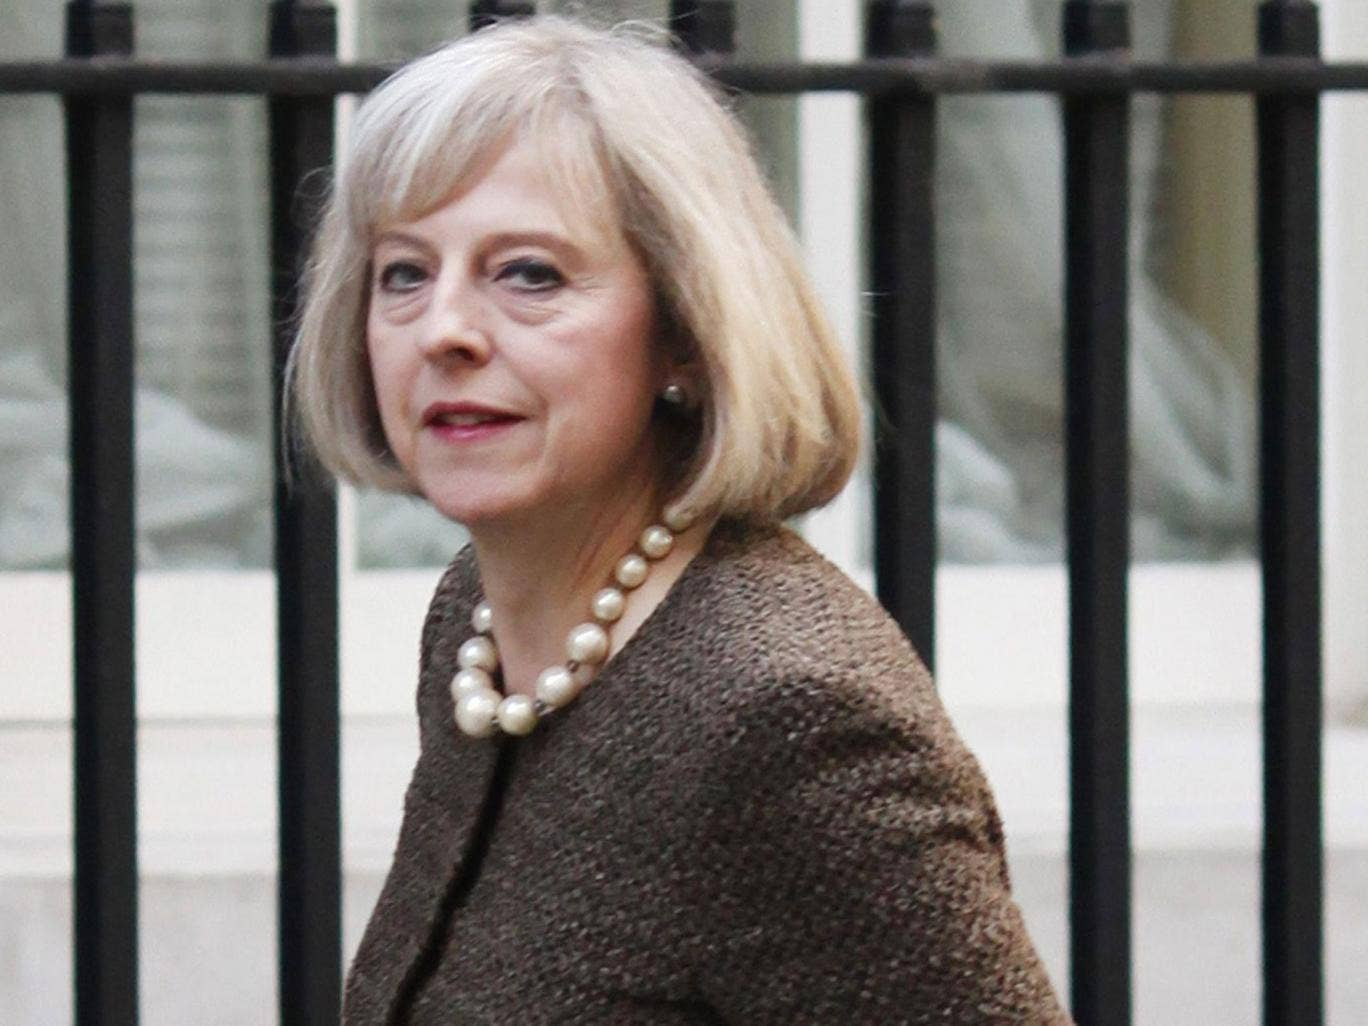 Theresa May: The Home Secretary has been urged to investigate the PCC's conduct